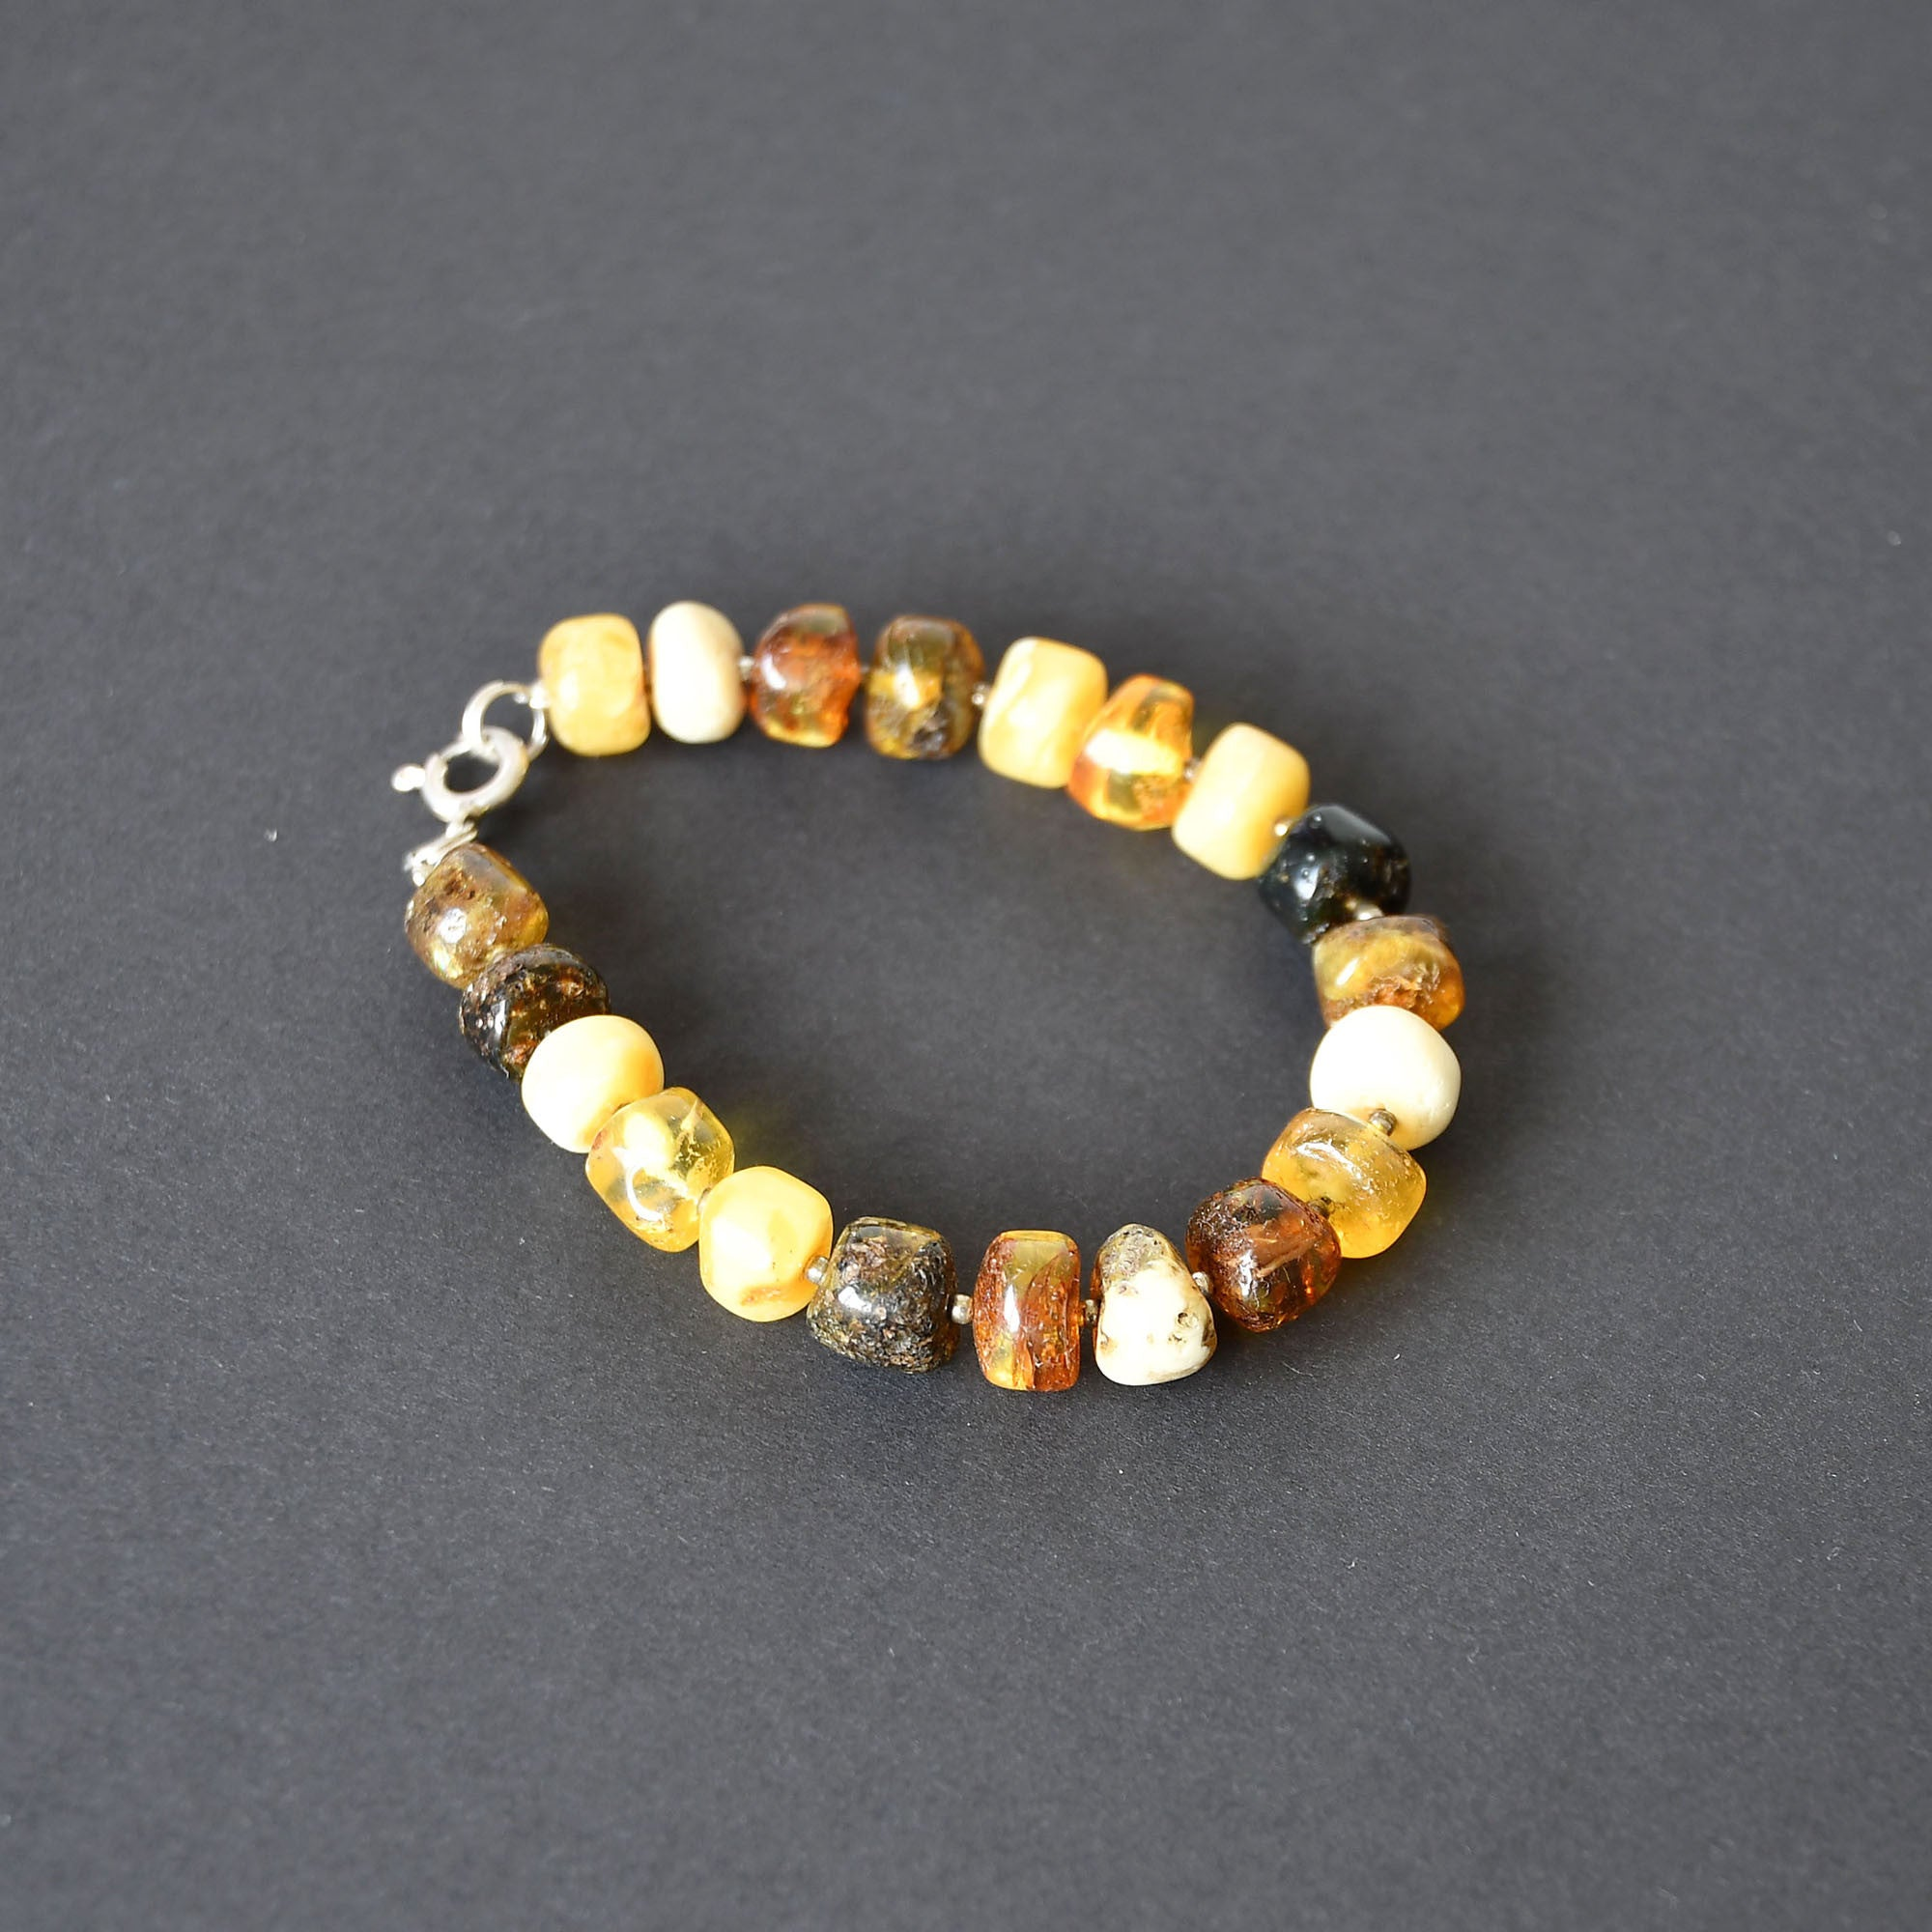 Colorful amber bracelet with a fastening